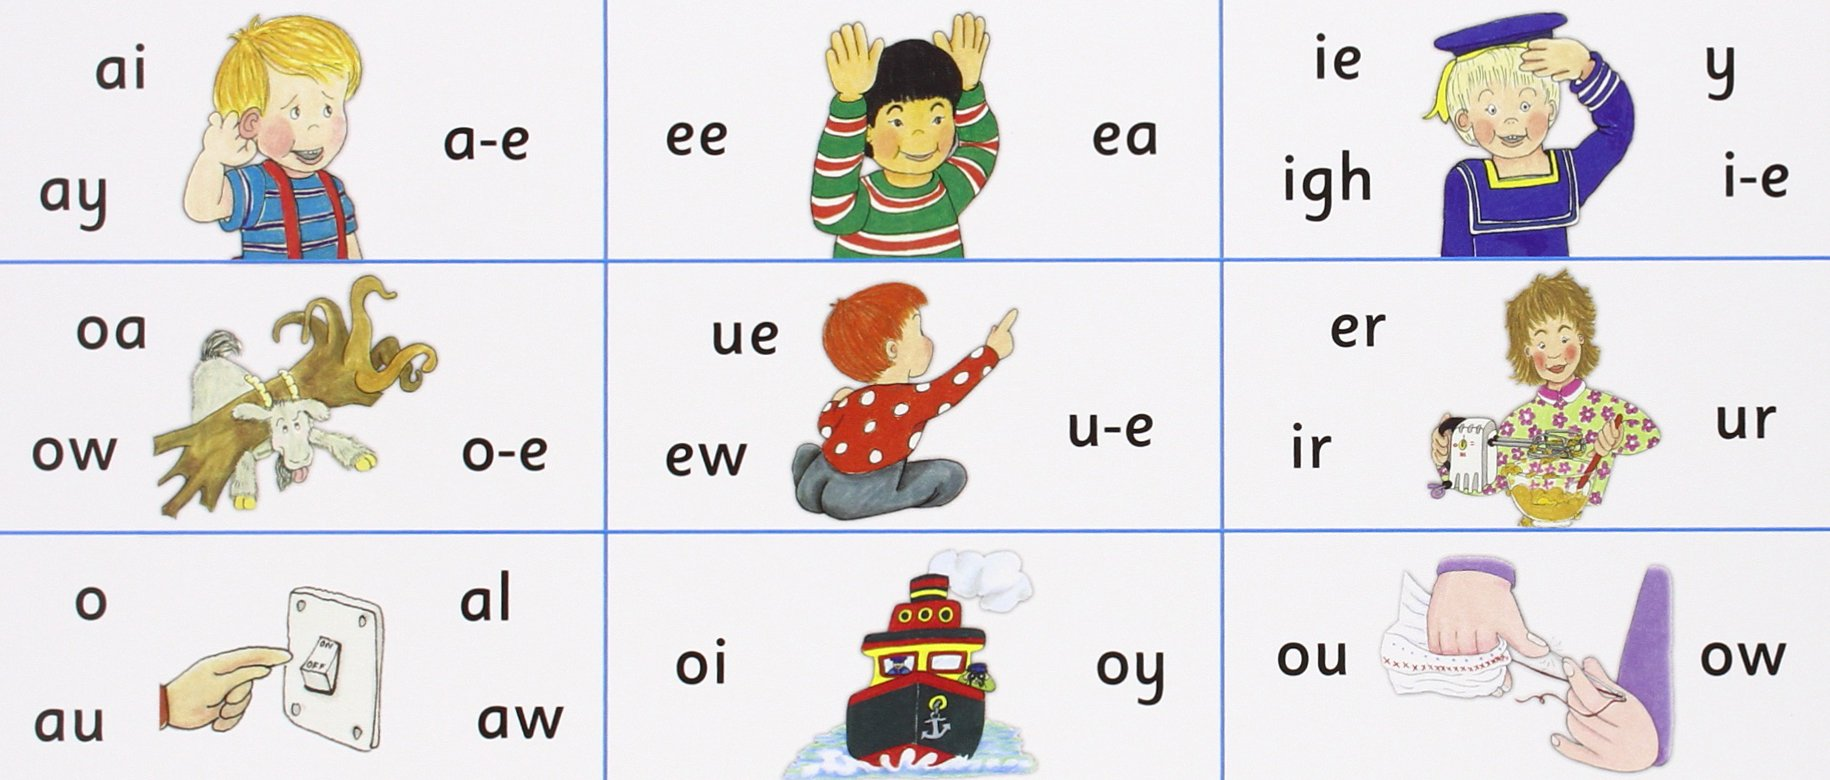 Workbooks jolly phonics workbook 1 free download : Jolly Phonics Letter Sound Strips: In Print Letters: Sue Lloyd ...